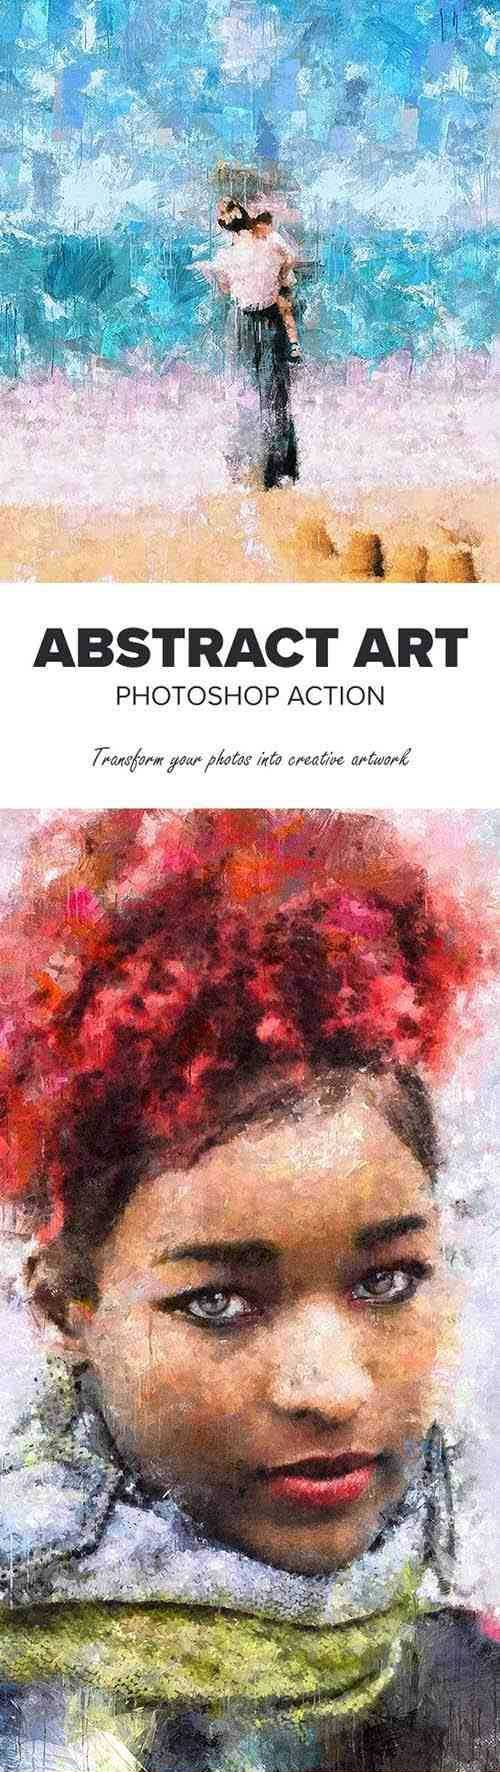 Abstract Art Photoshop Action 25712393